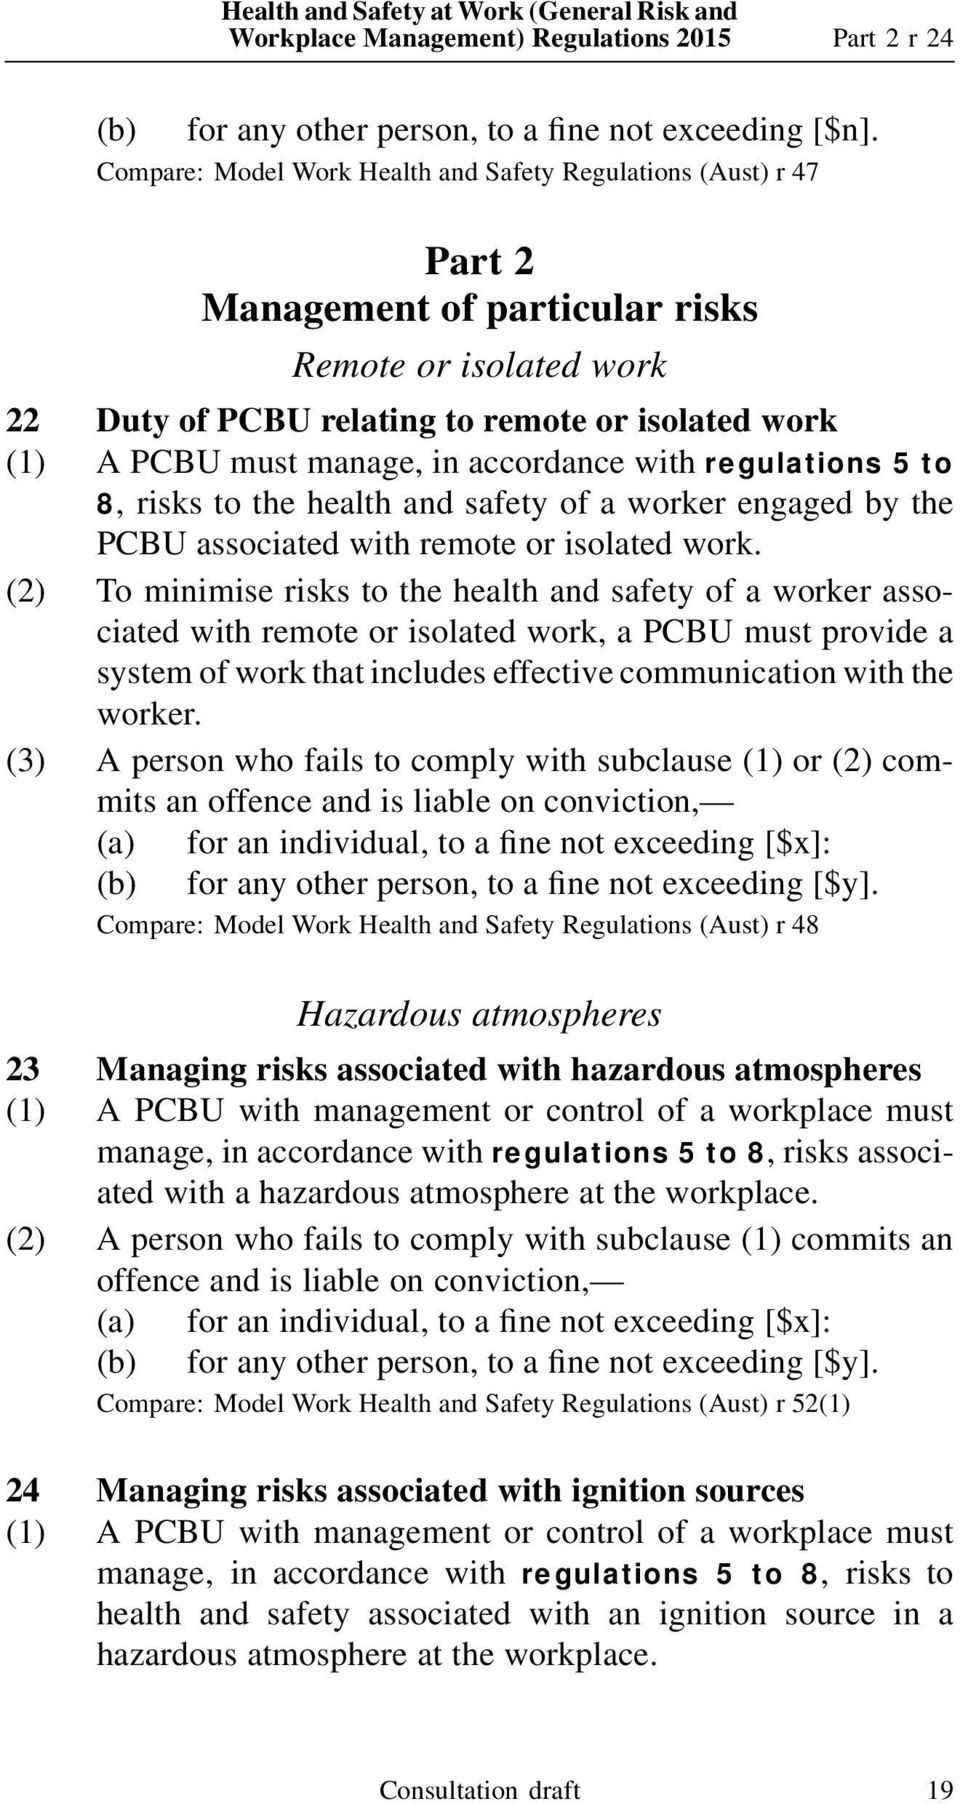 in accordance with regulations 5 to 8, risks to the health and safety of a worker engaged by the PCBU associated with remote or isolated work.